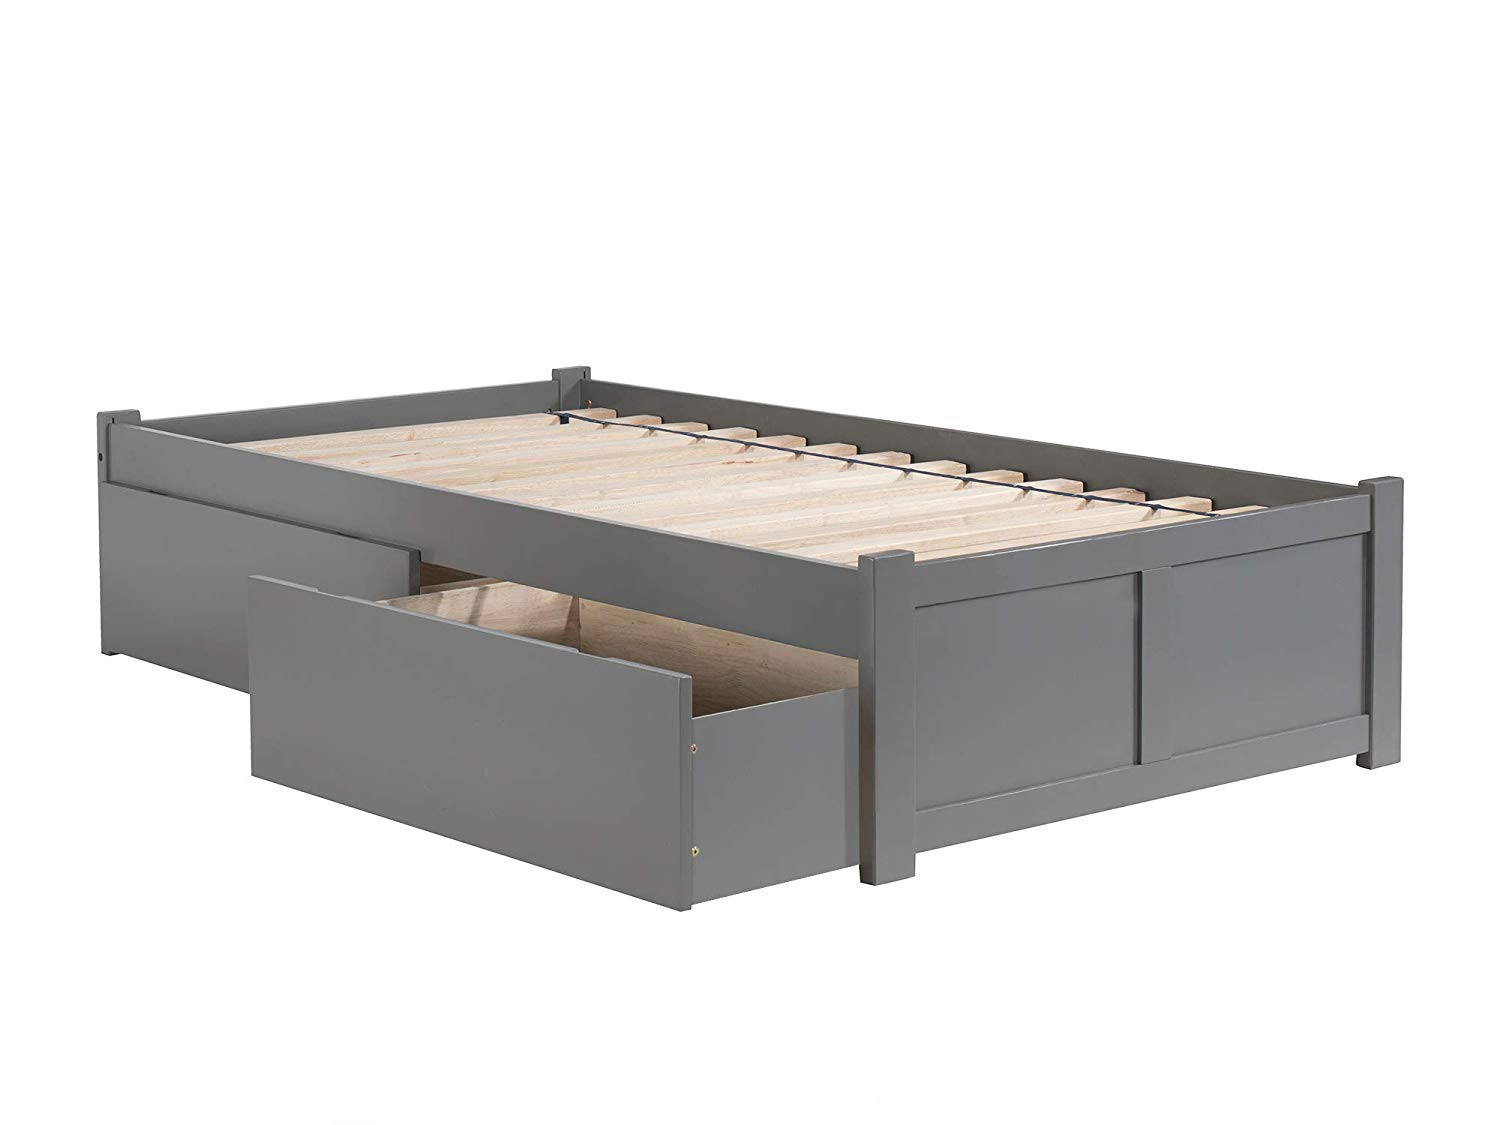 Atlantic Furniture Concord Platform Bed with 2 Urban Bed Drawers, Twin XL, Grey